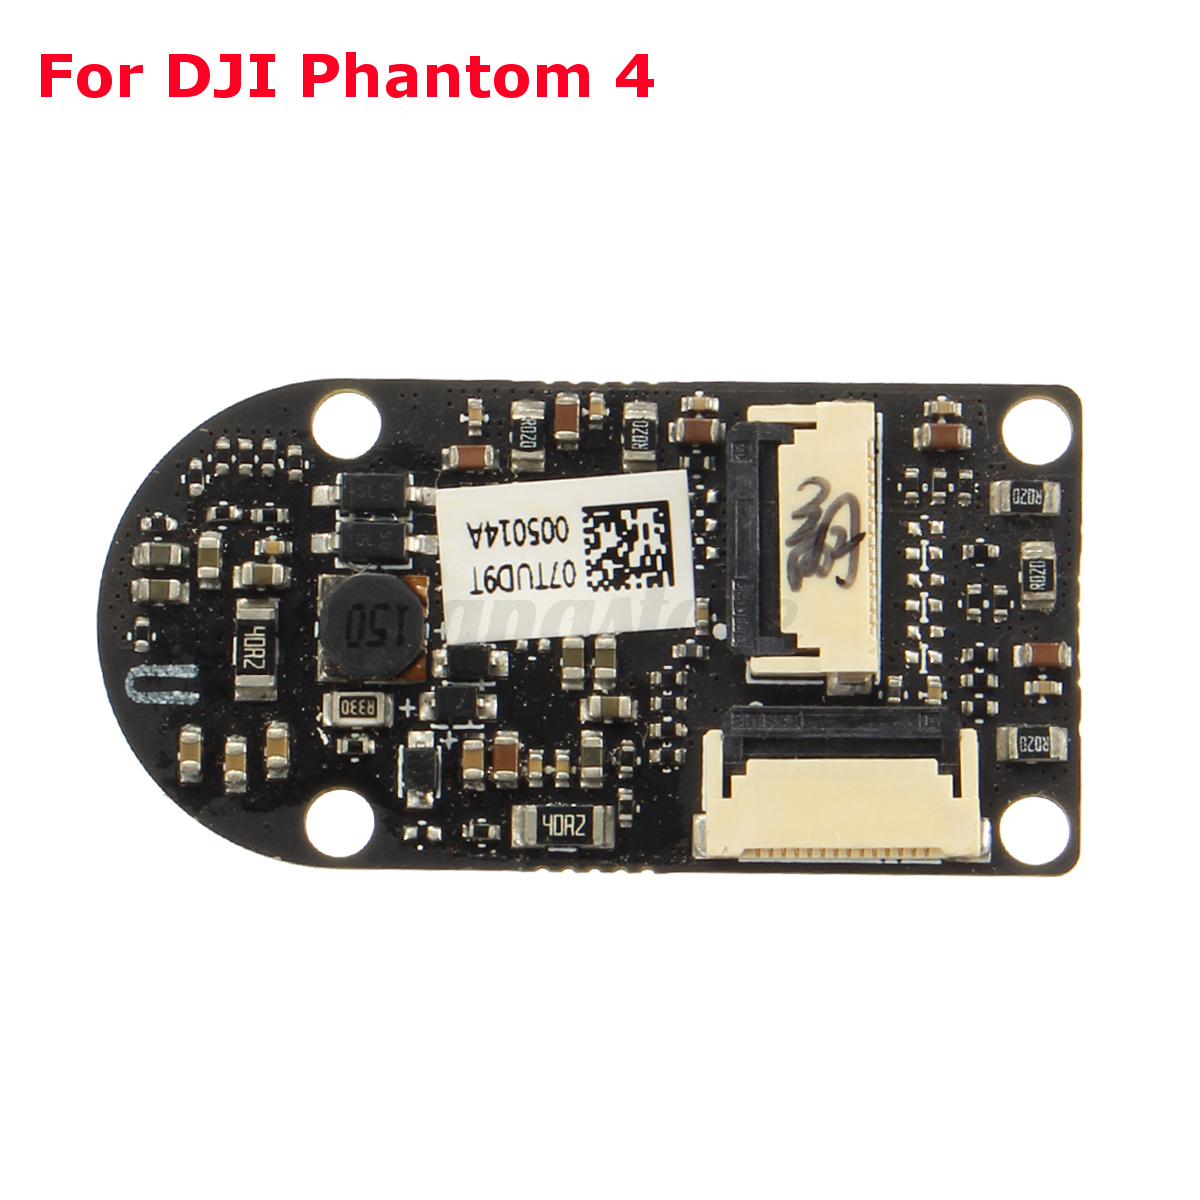 New Yr Motor Esc Chip Circuit Board For Dji Phantom4 4 Pro Repair Replacement Part R C Helicopter Radio Control